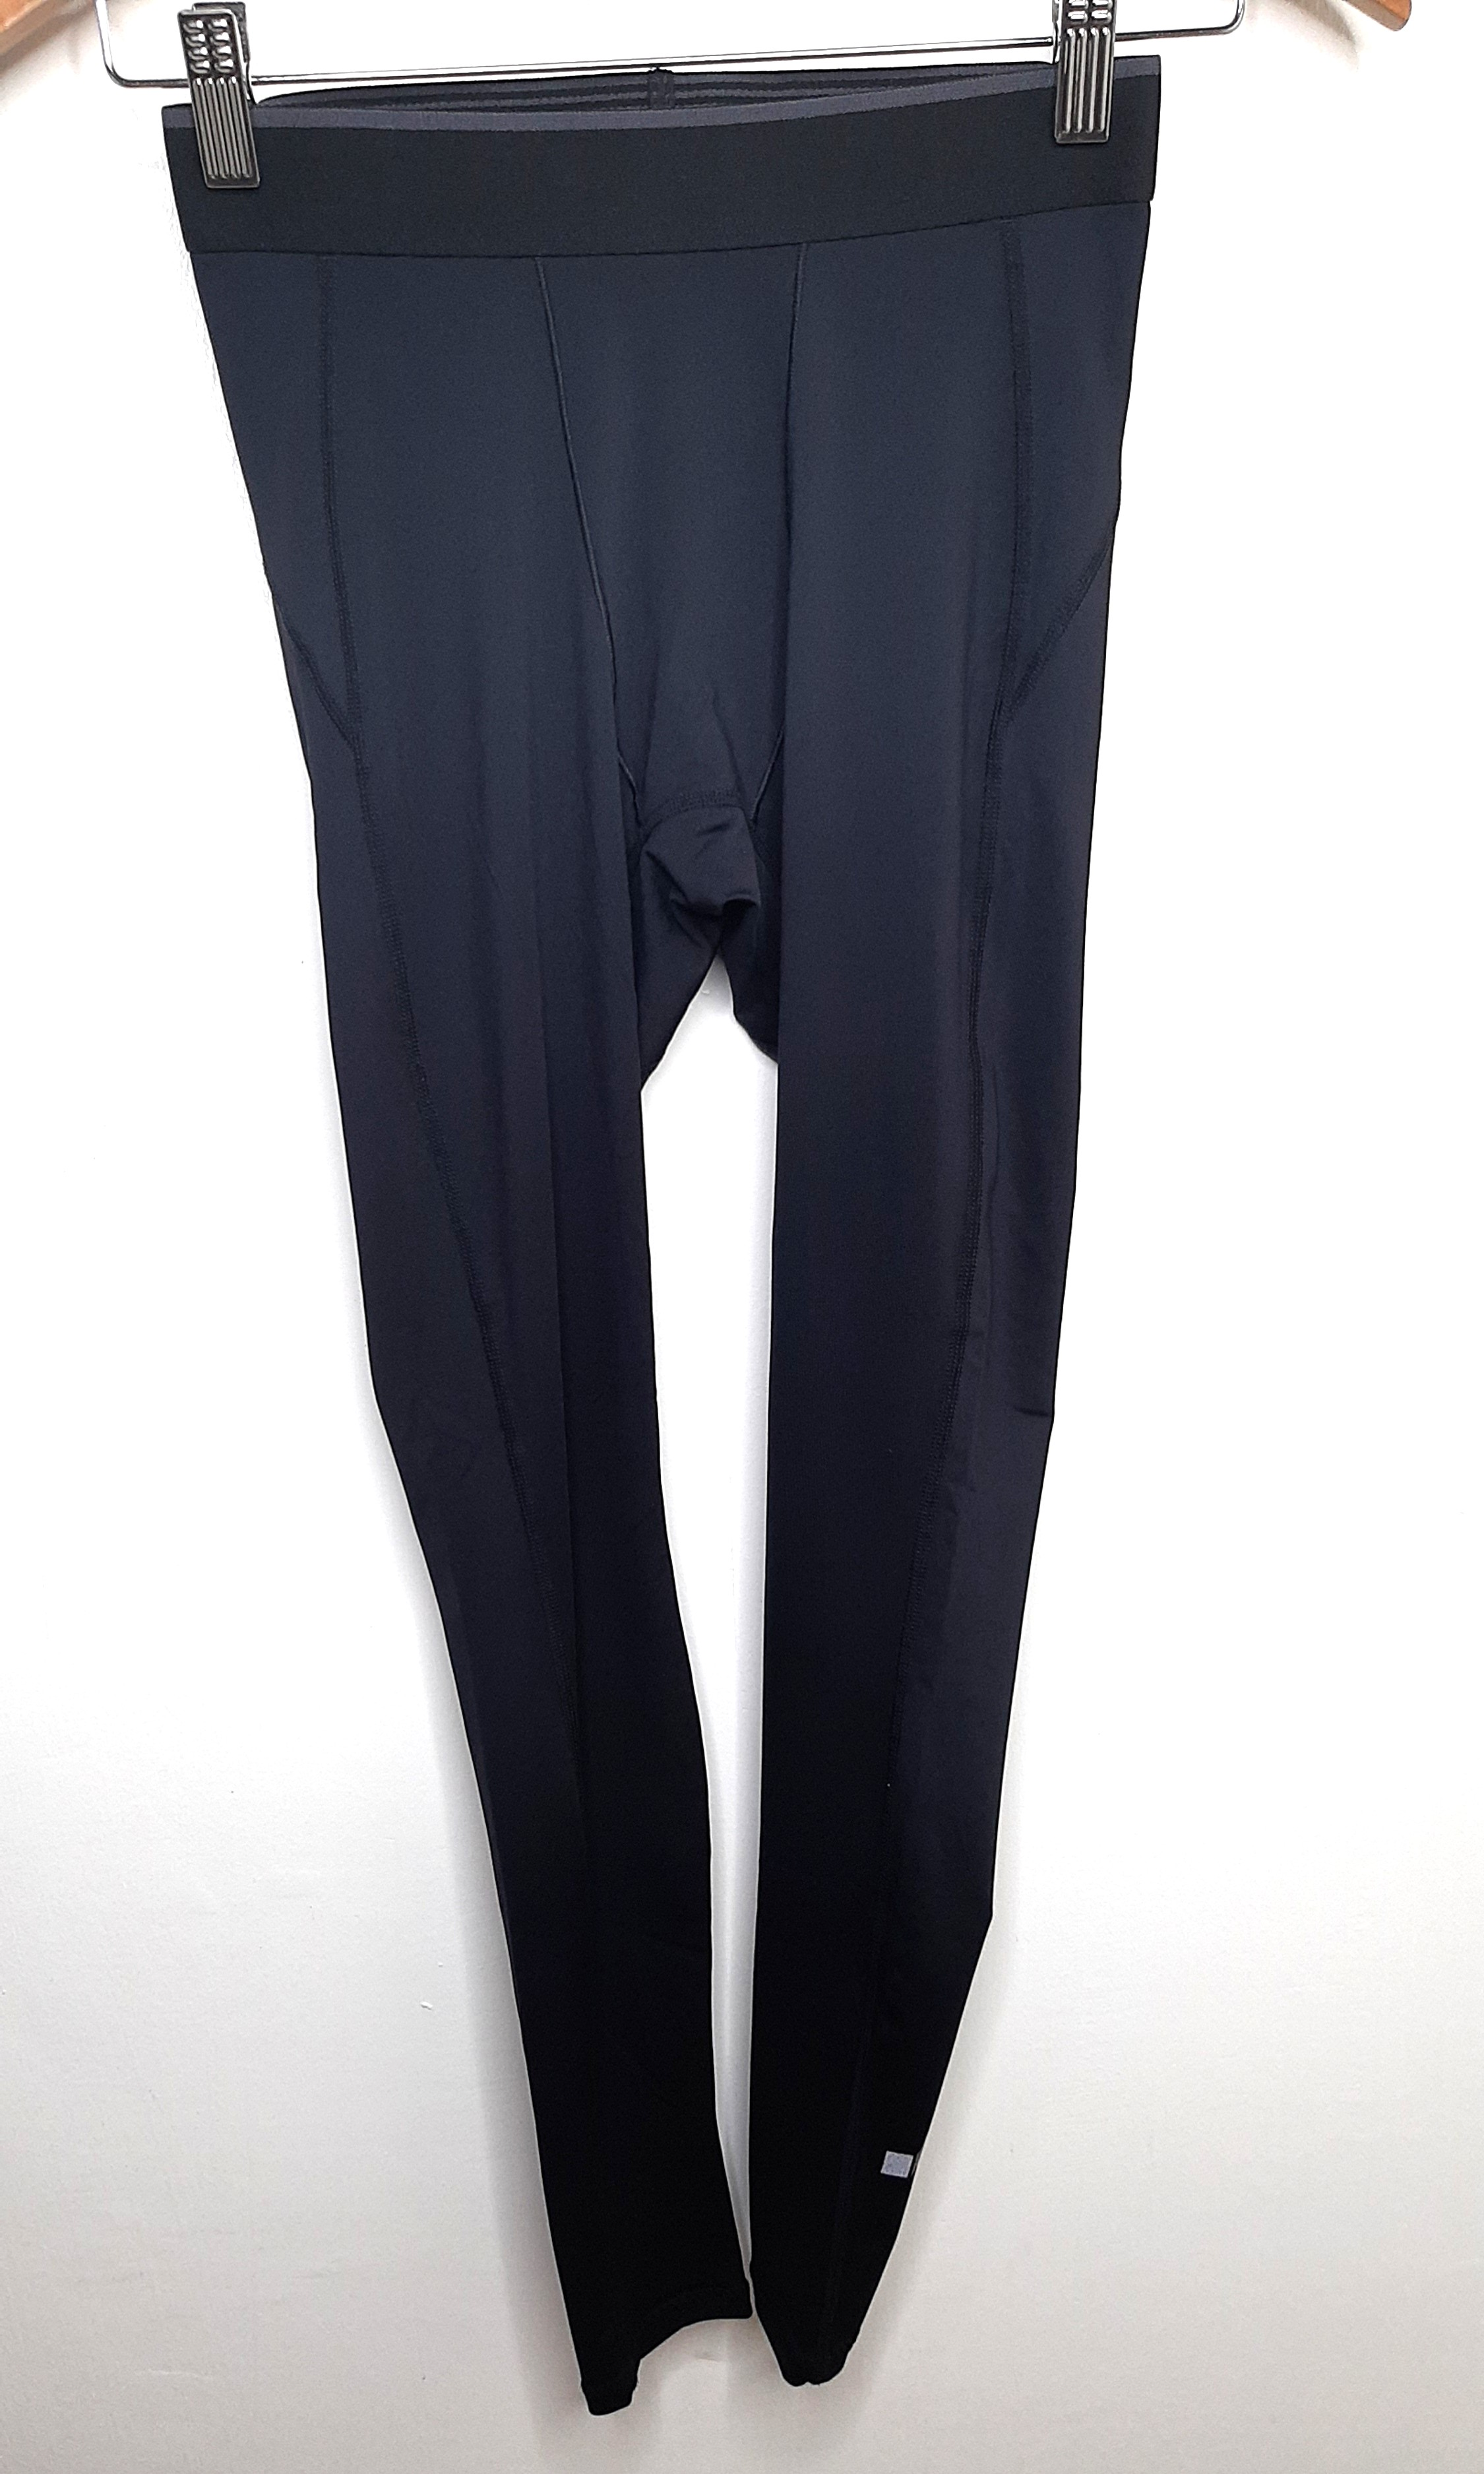 Uniqlo Airism Heattech Leggings Sports Athletic Sports Clothing On Carousell